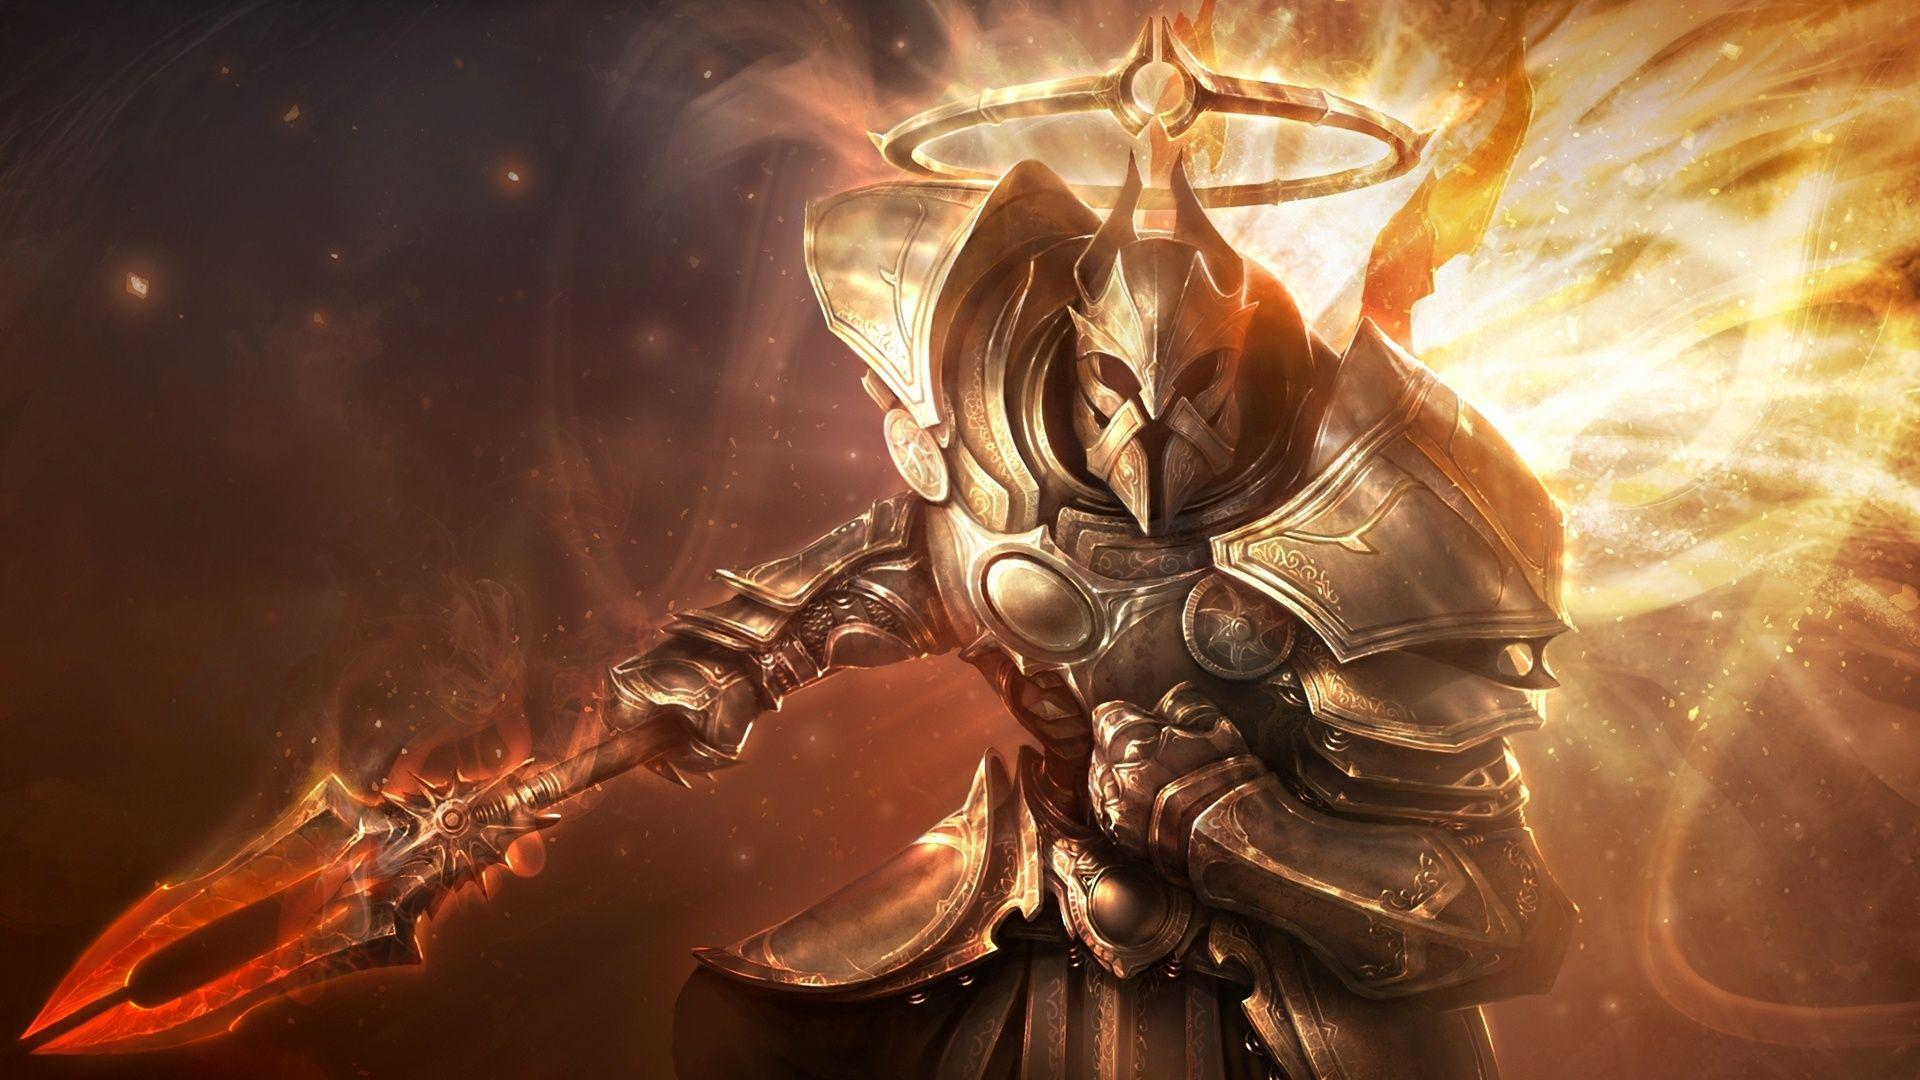 Epic Video Game Wallpapers - Wallpaper Cave